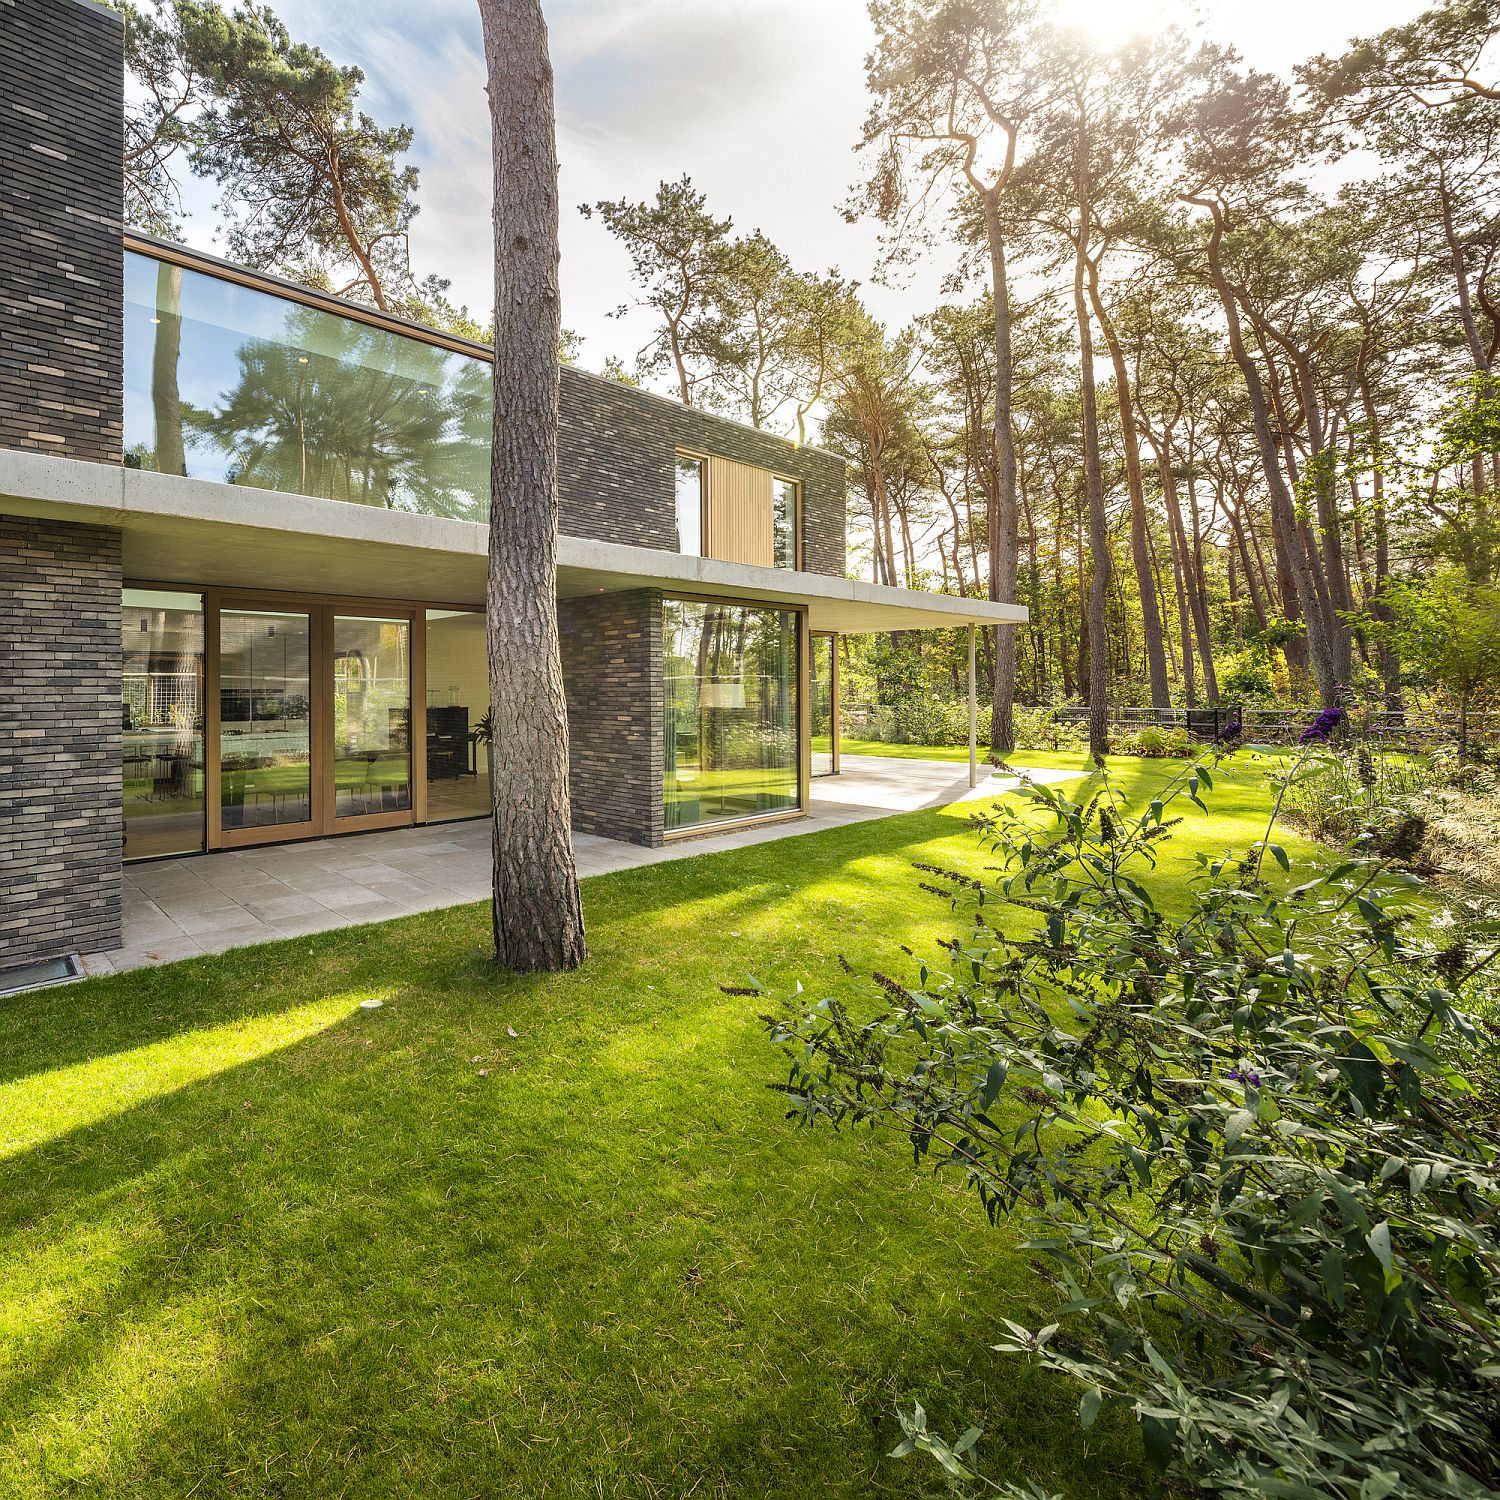 Natural canopy and green landscape offer cover to the house